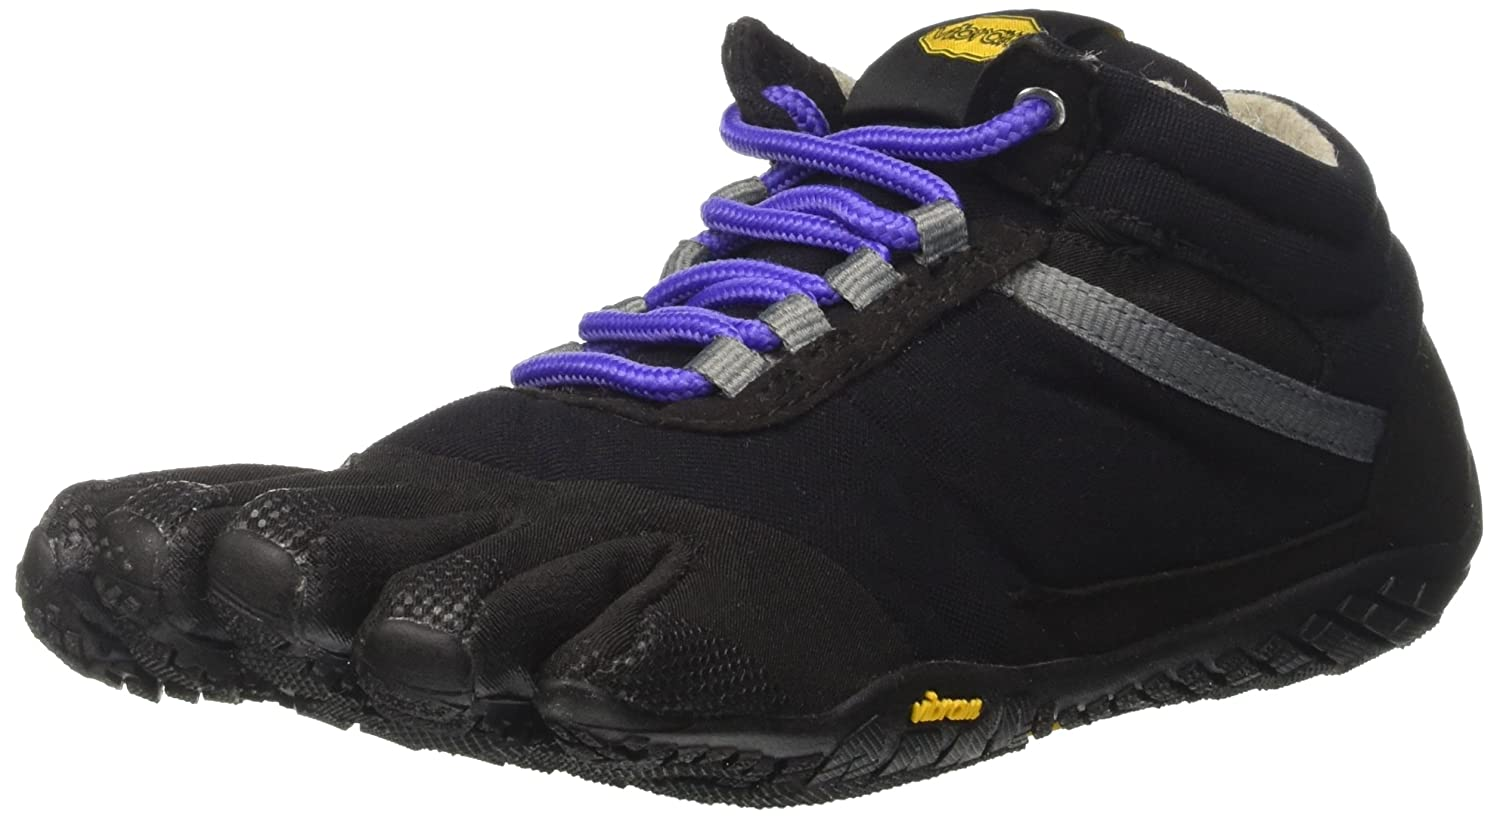 Vibram Trek Ascent Insulated-Women's Shoe B01149EGUU 36.0 B EU (6.5-7 US)|Black/Purple